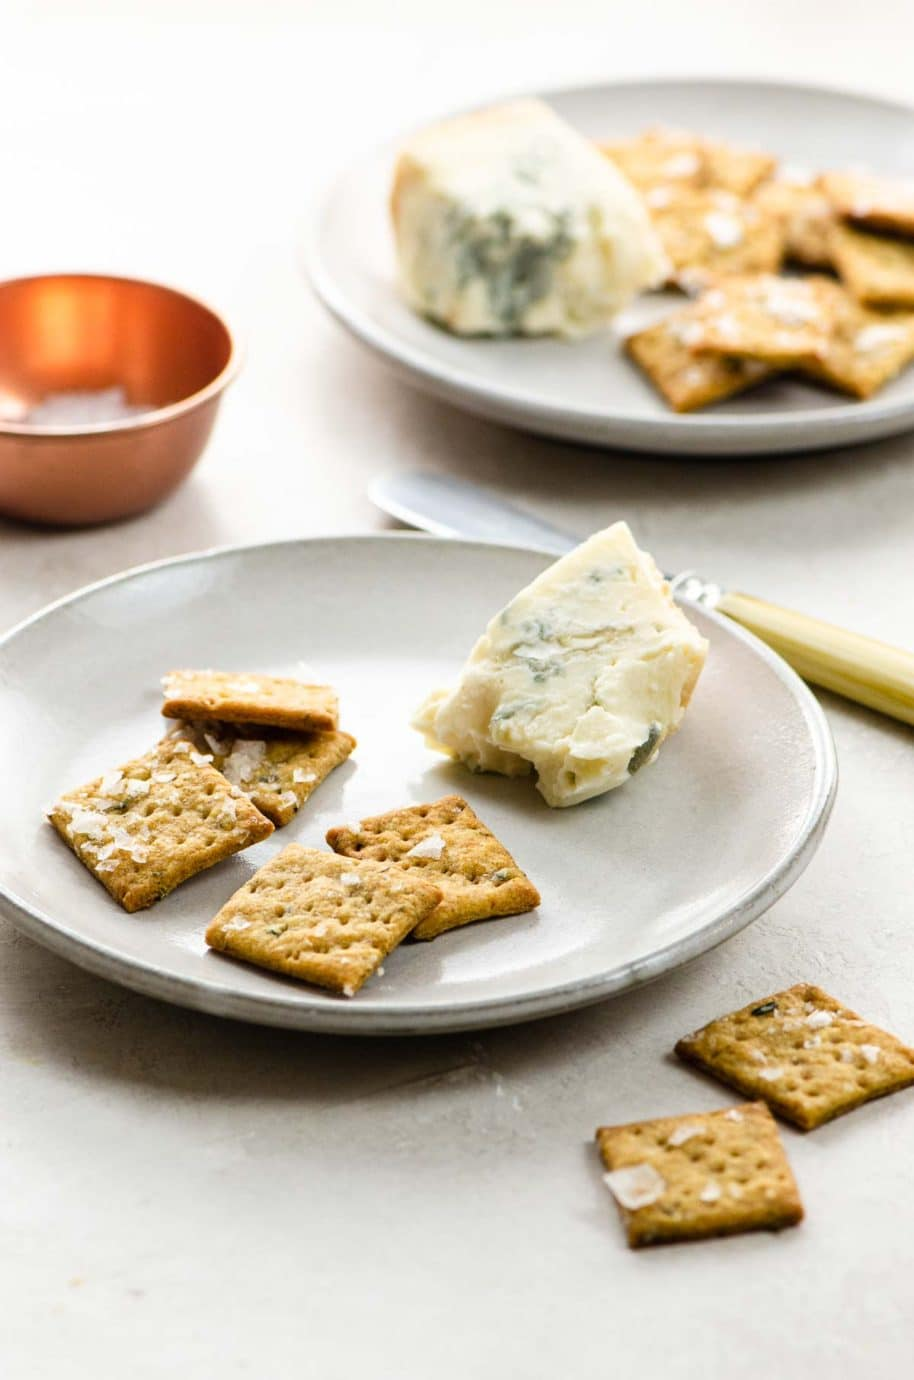 sourdough crackers and cheese on plates